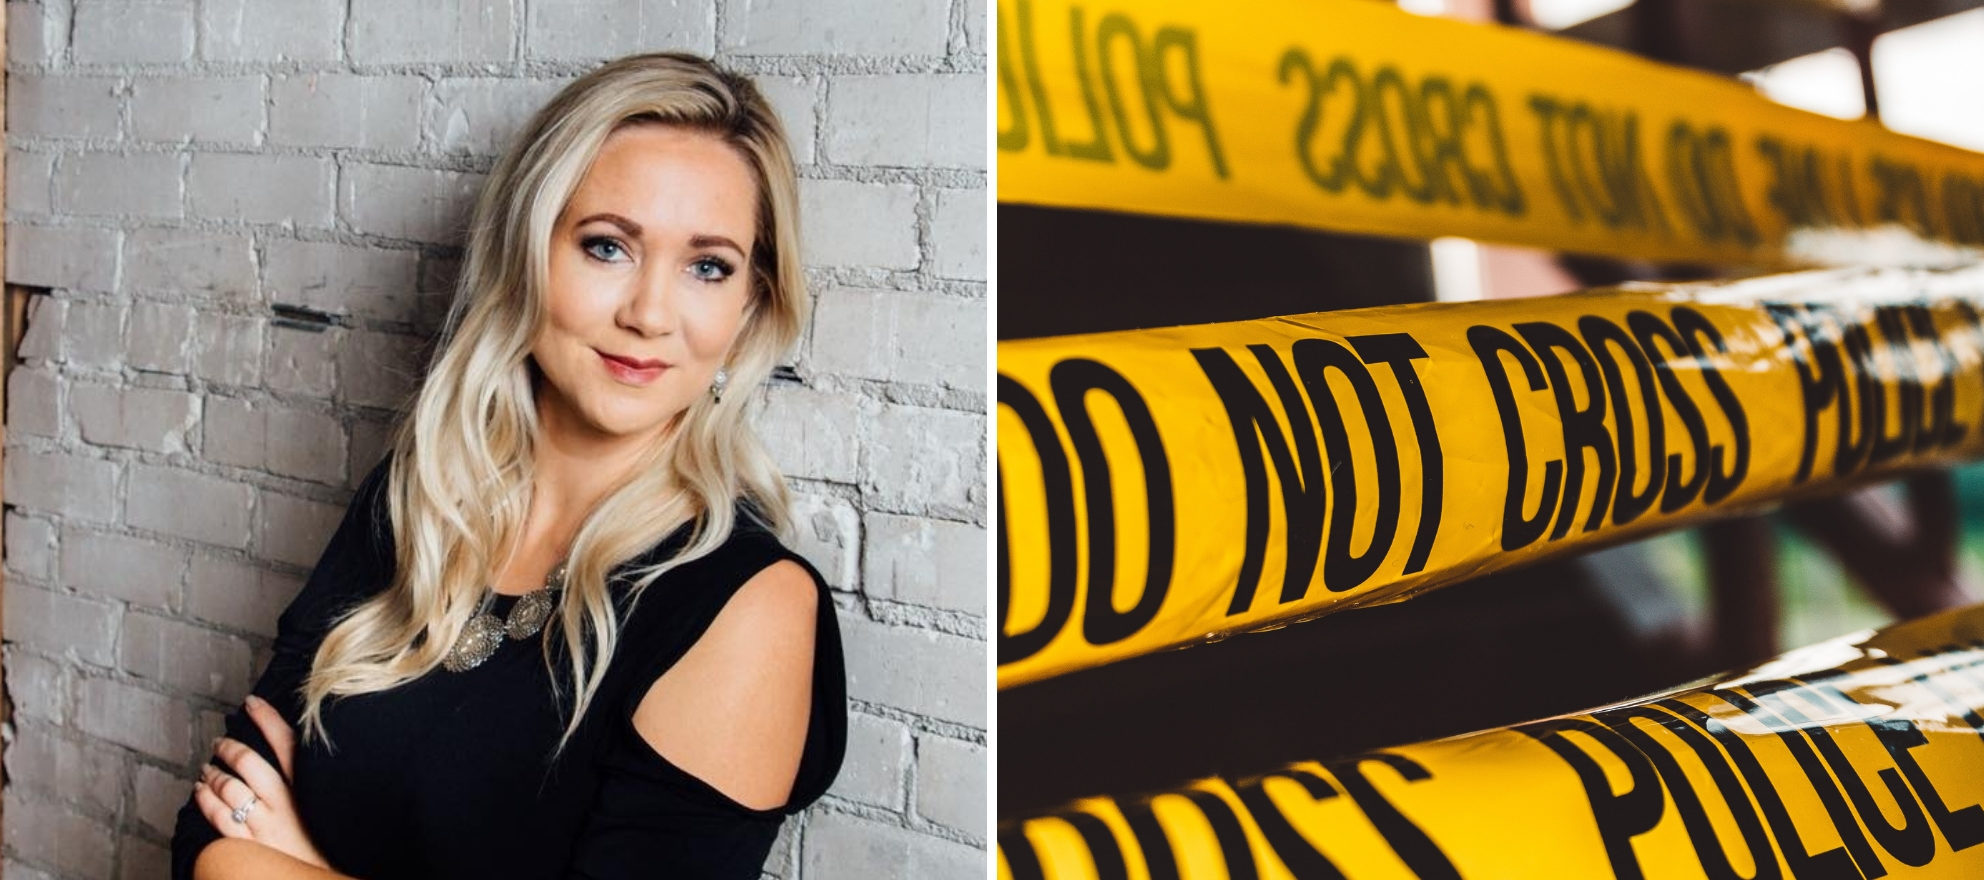 Keller Williams agent killed by husband in murder-suicide